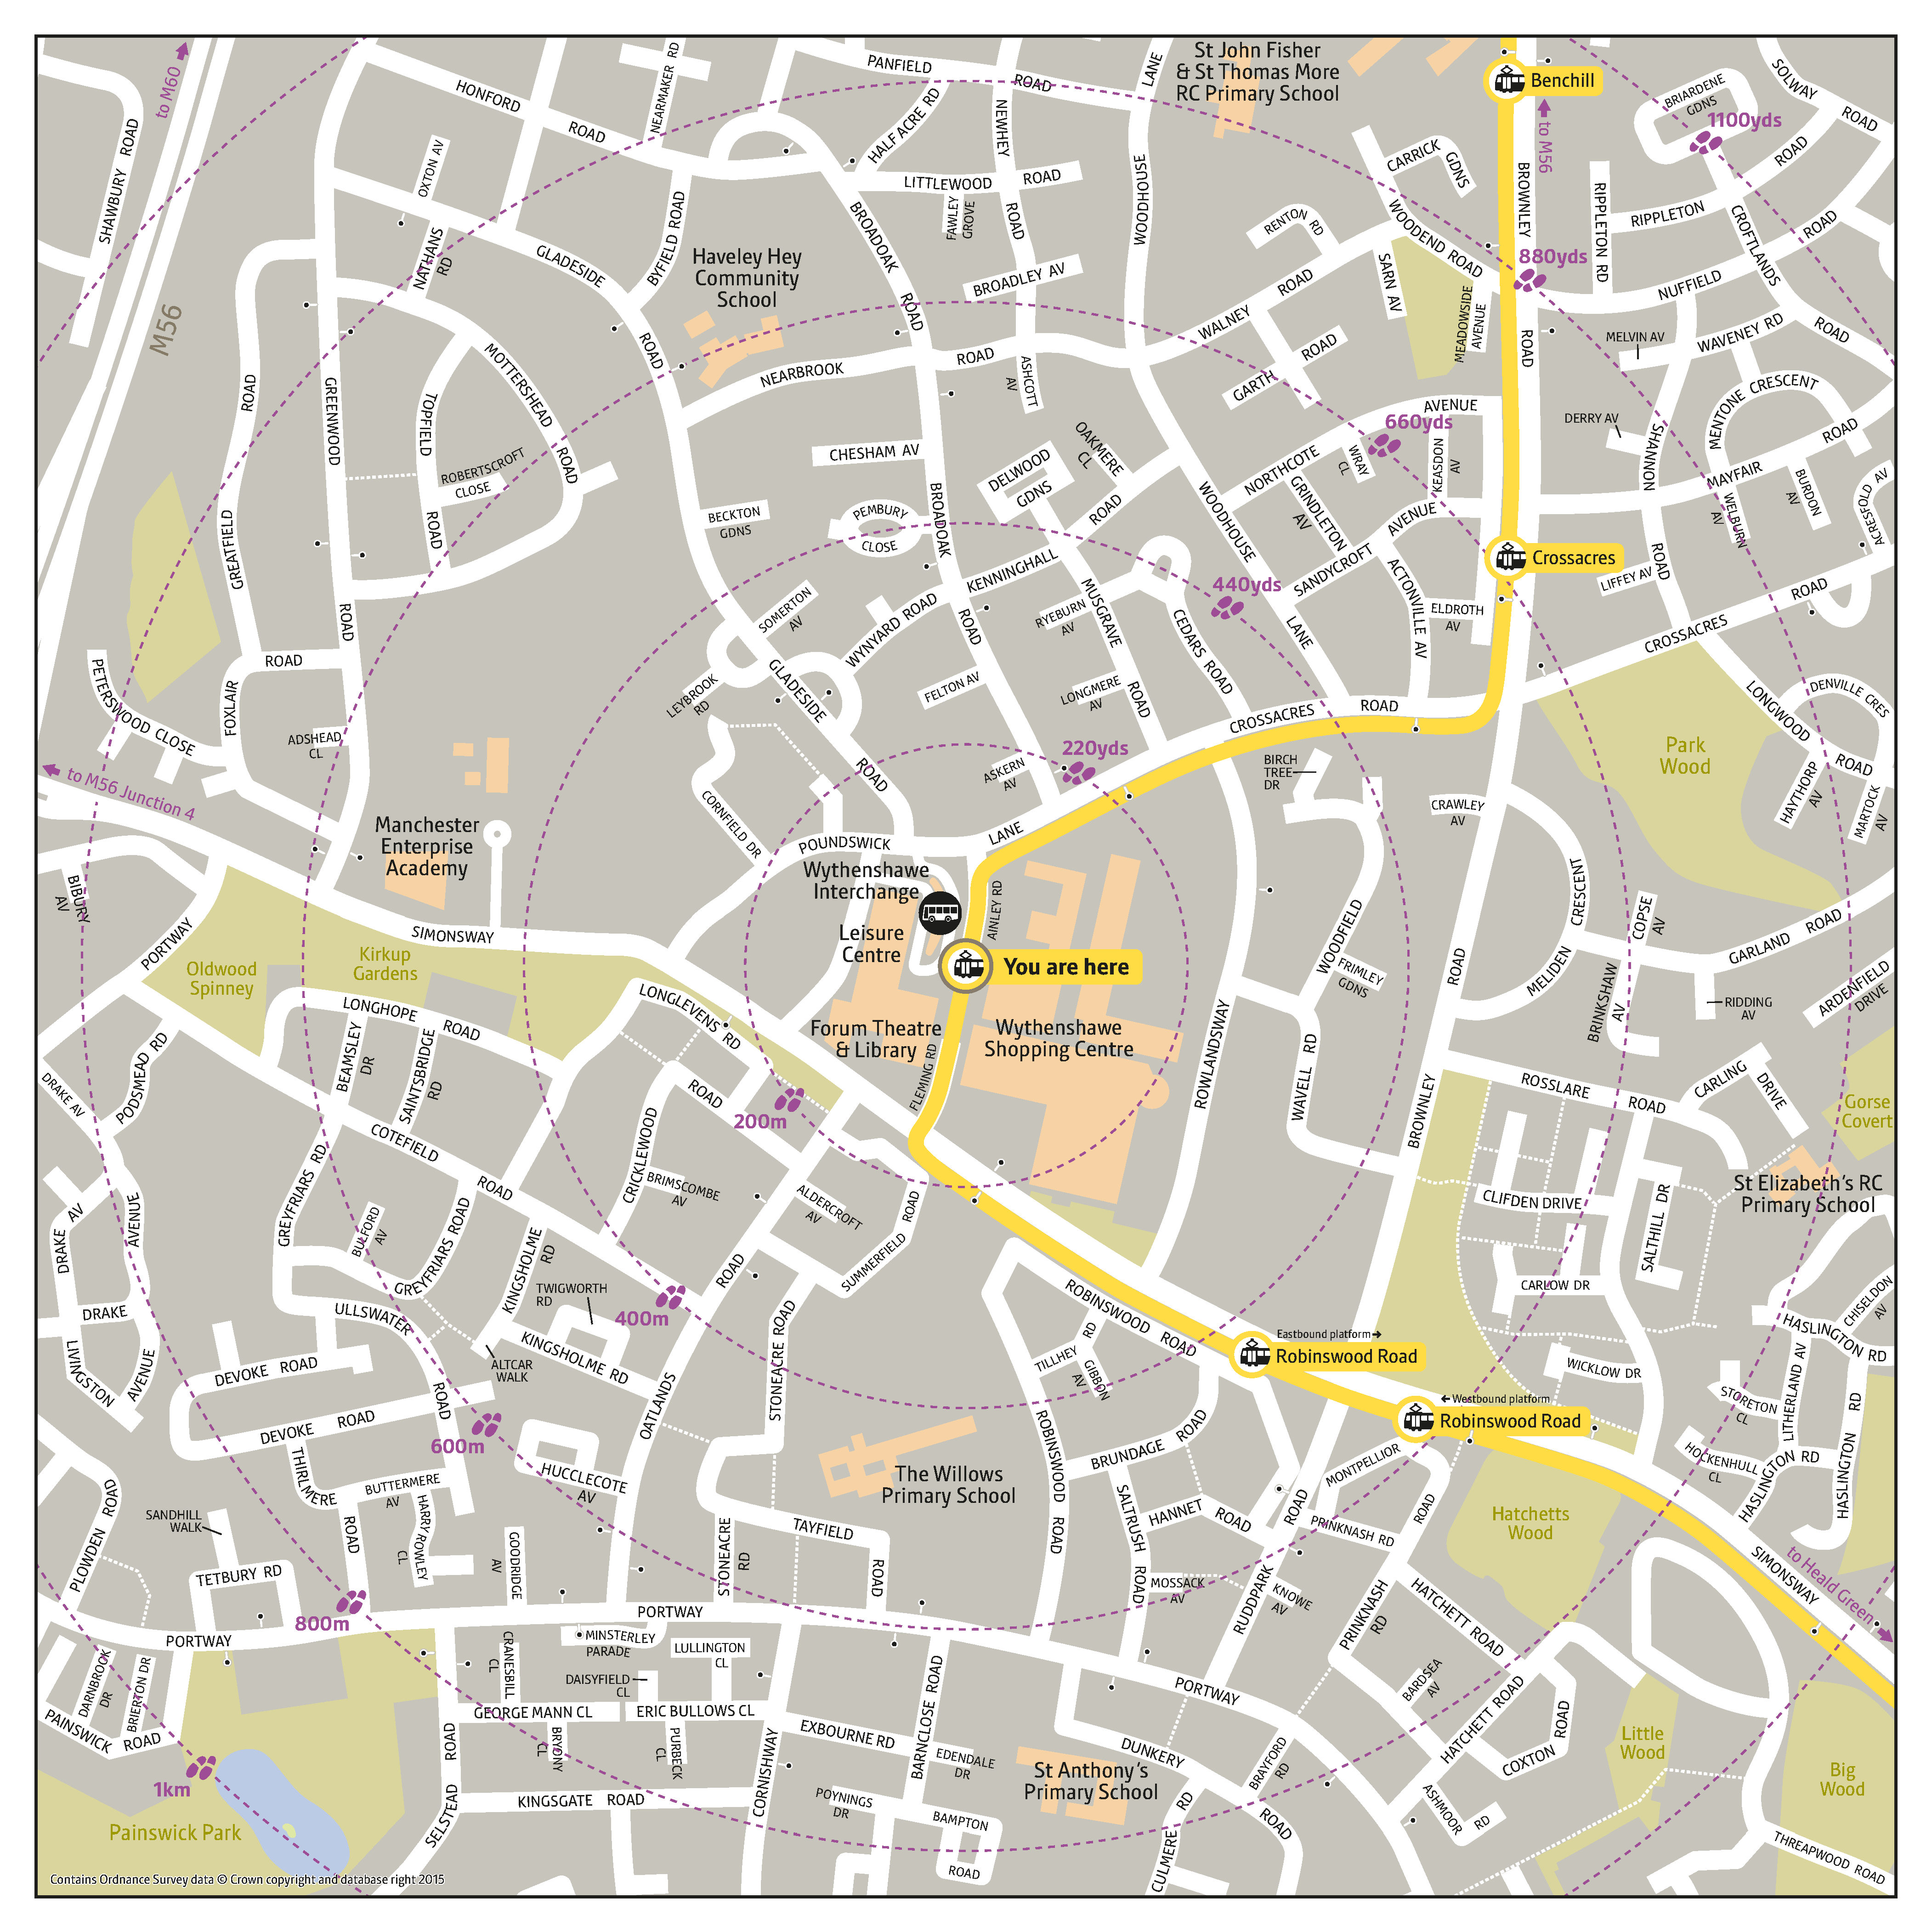 Local area map for Wythenshawe Town Centre tram stop